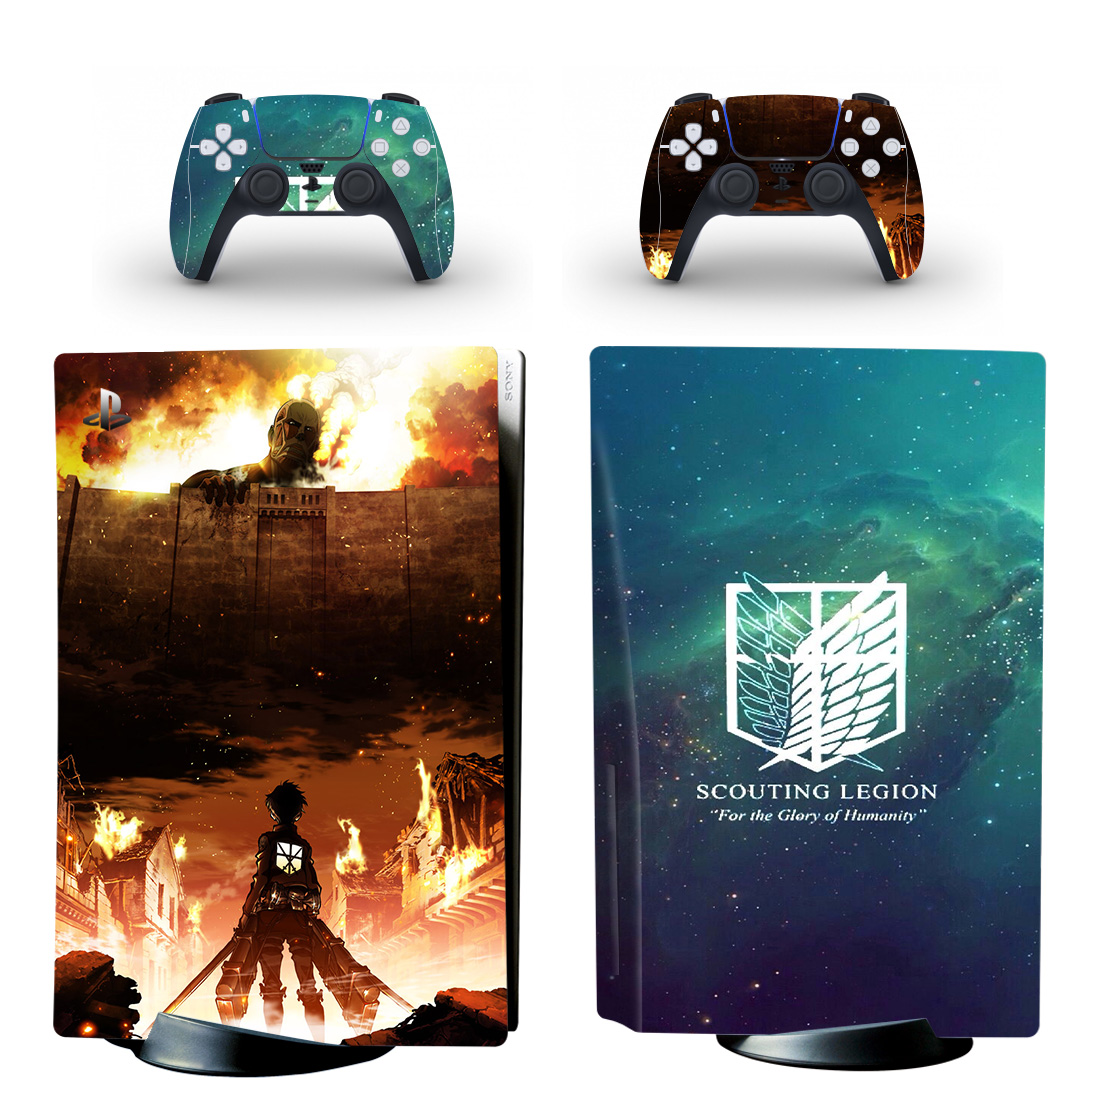 Attack On Titan Skin Sticker For PlayStation 5 And Controllers